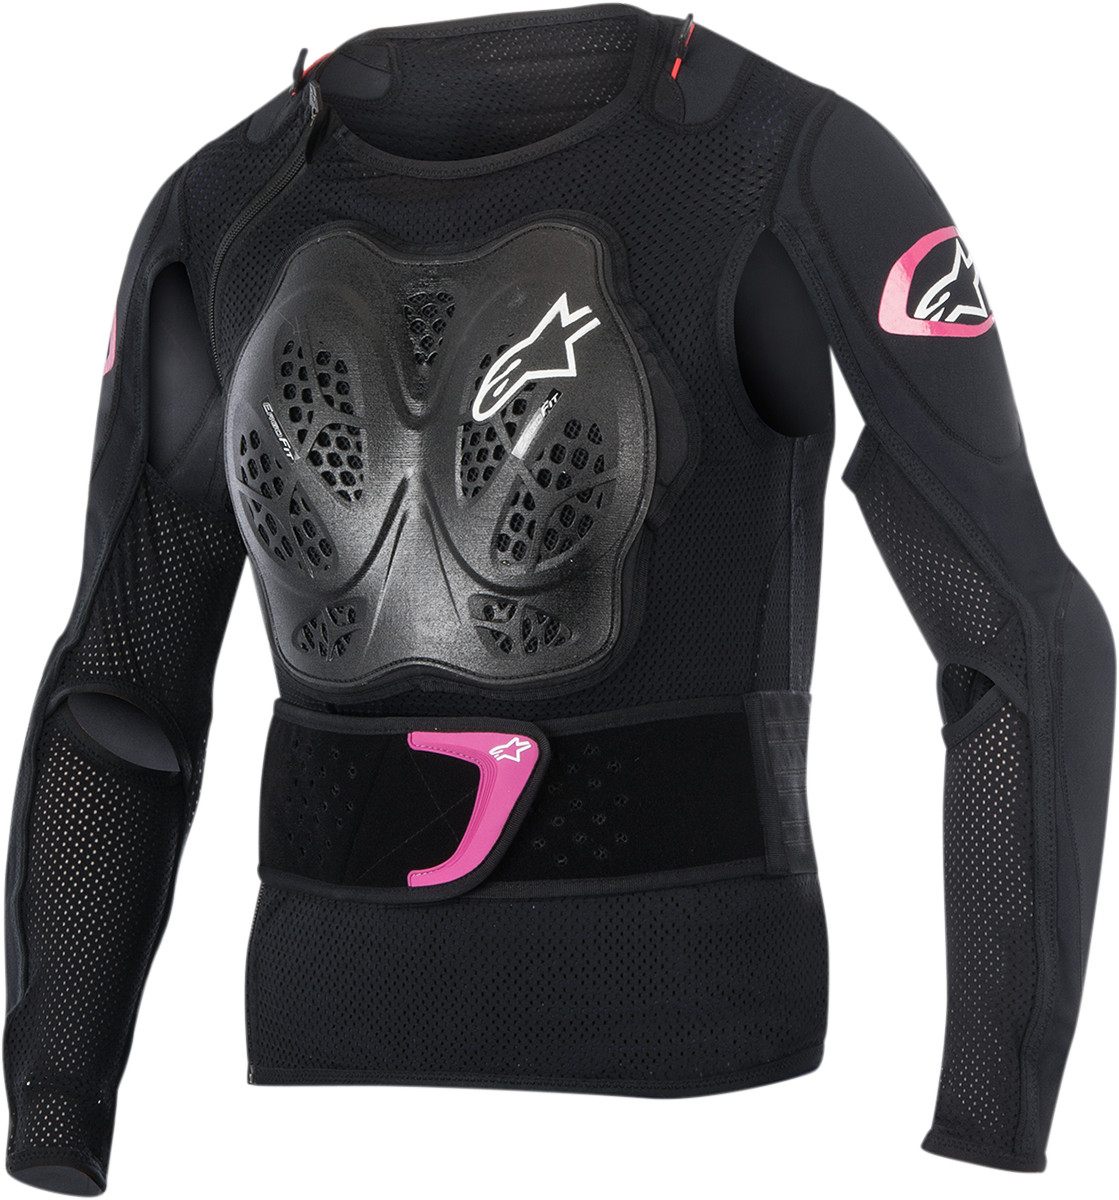 Alpinestars Womens Black Pink Stella Bionic Off road Riding Dirt Bike Jacket